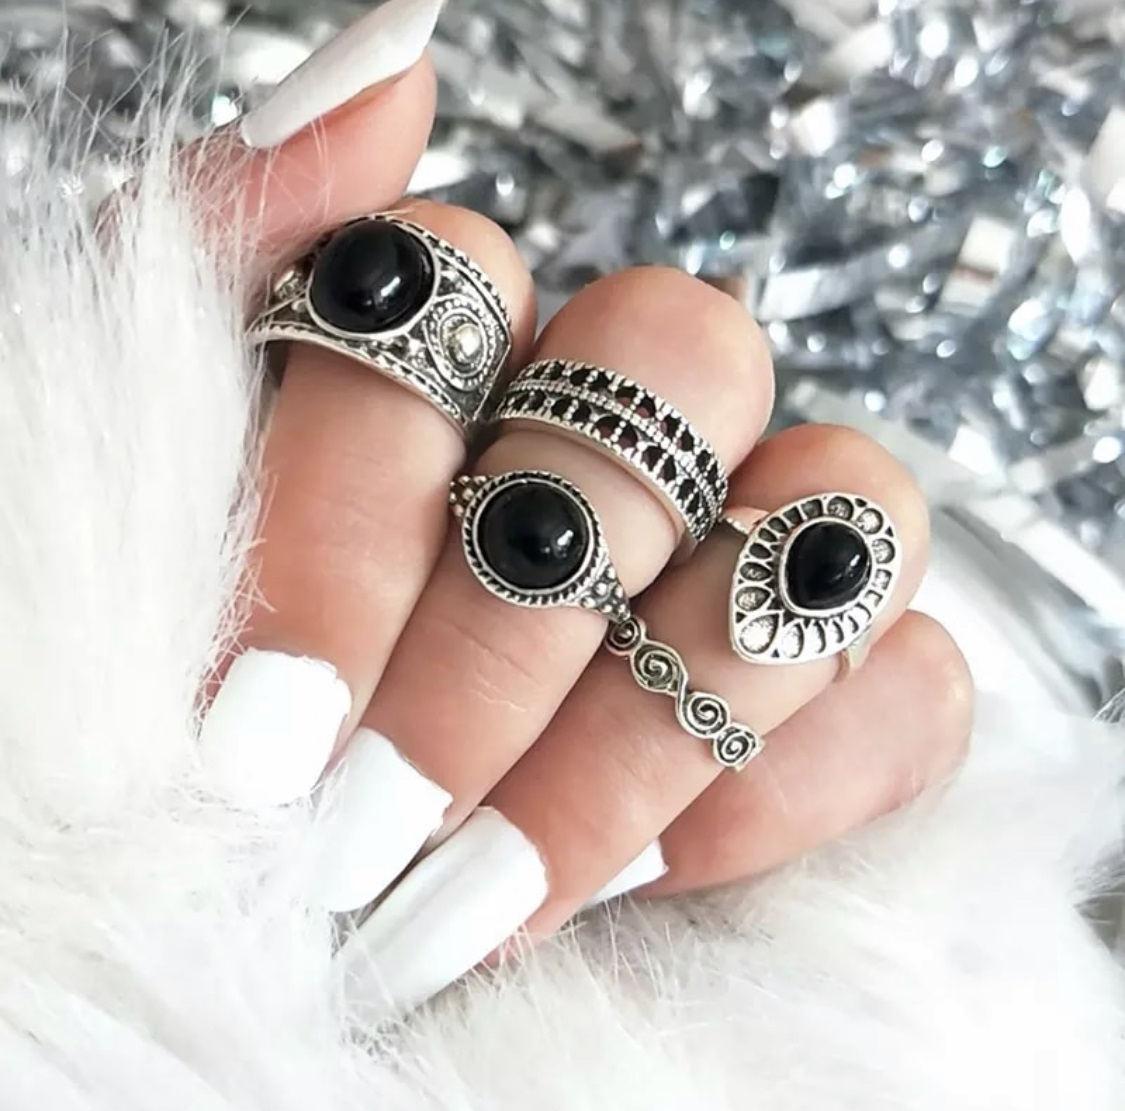 Retro Black Gem Ring Water Droplets Clouds Circle Rings